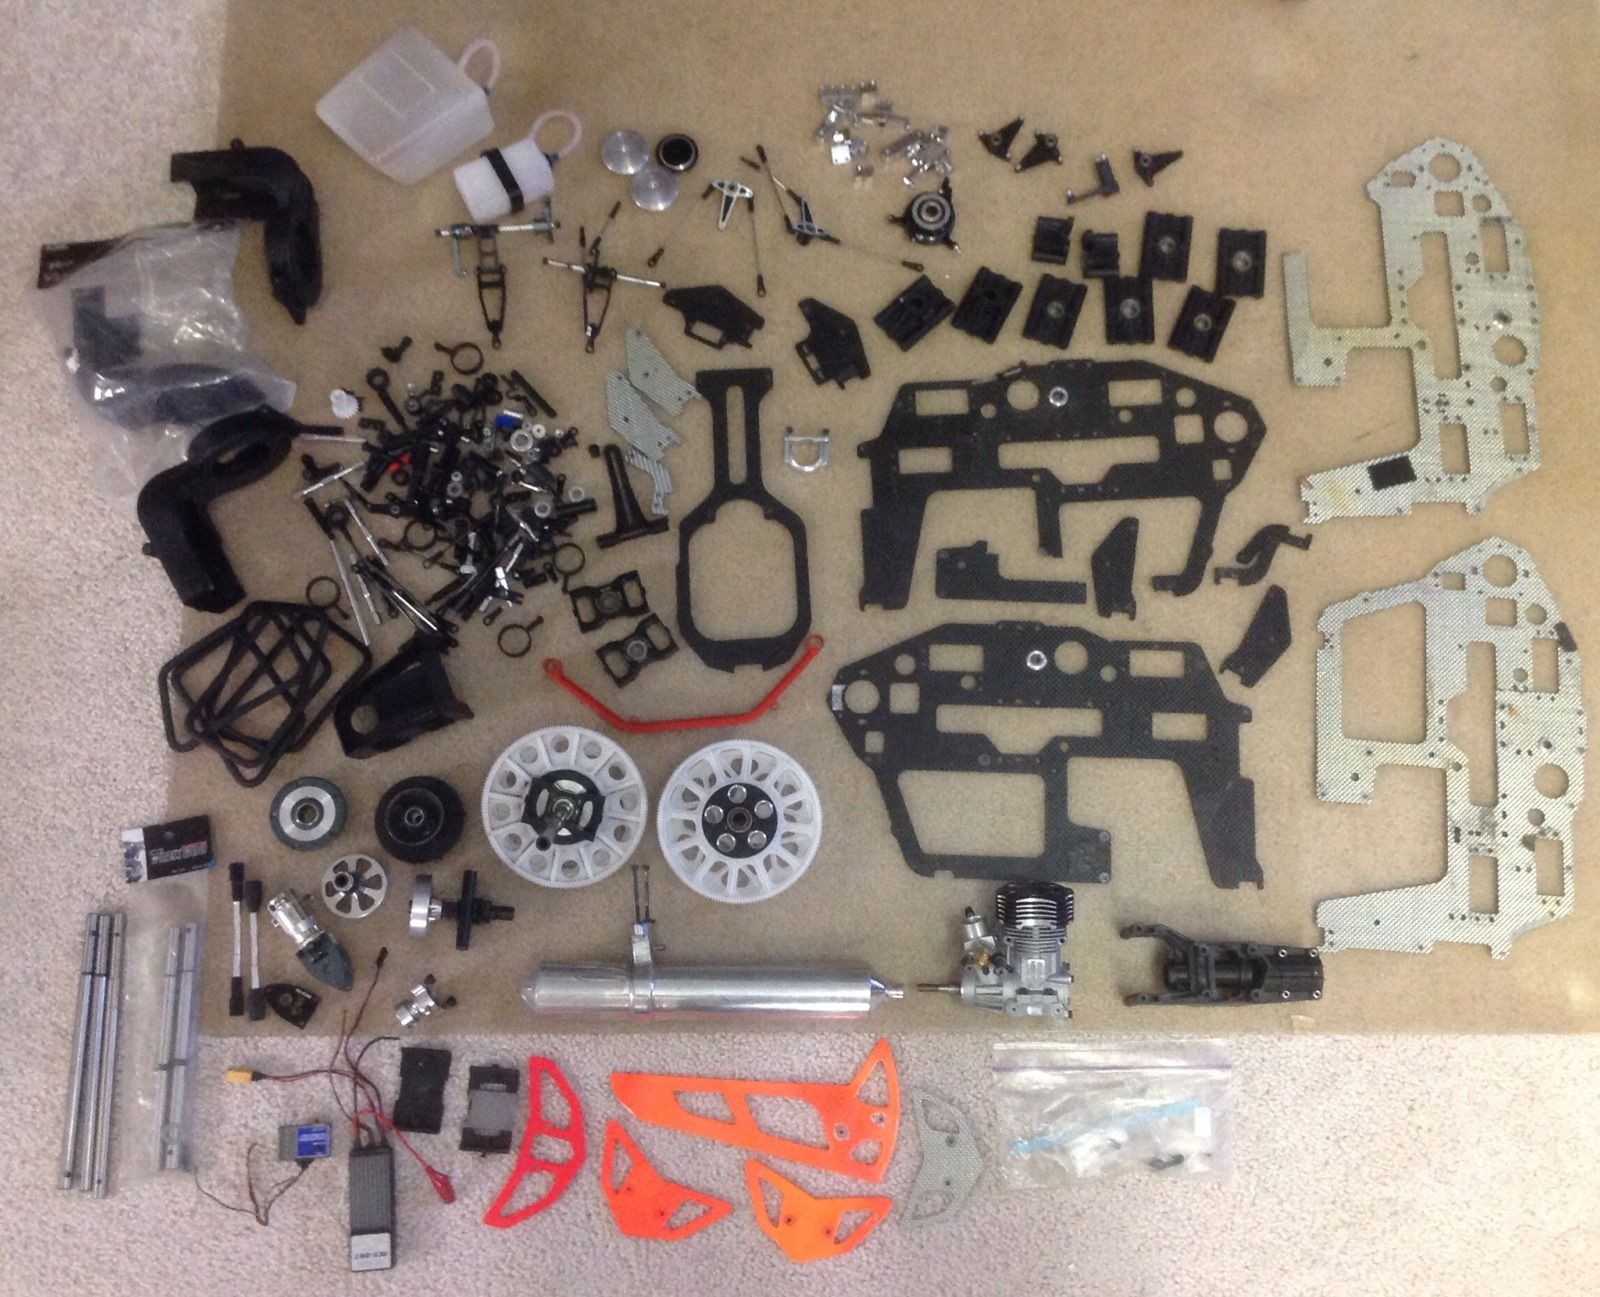 Click image for larger version  Name:rc helicopter parts 01.JPG Views:760 Size:296.4 KB ID:1991237